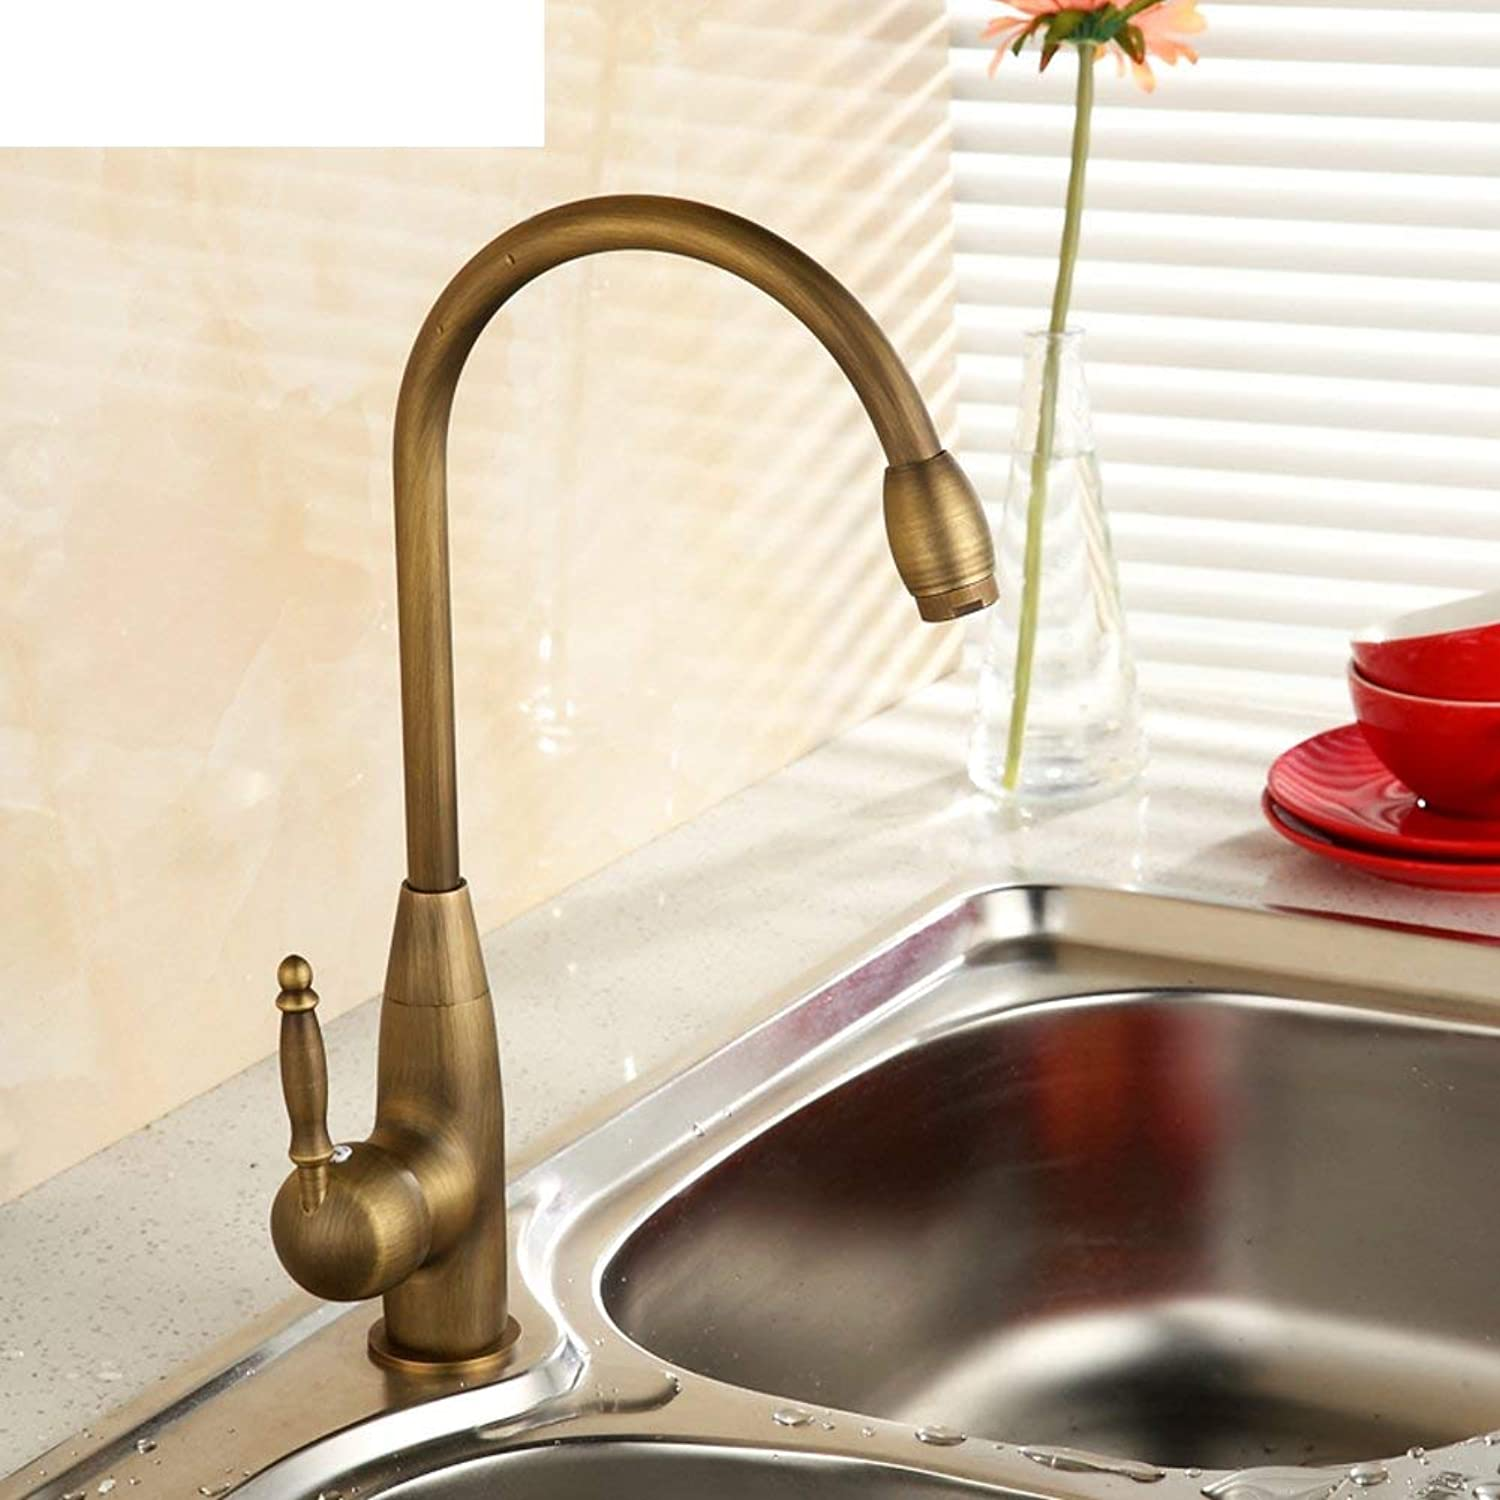 Oudan Kitchen Faucet All copper antique kitchen faucet Hot and cold vegetables basin faucet redatable sink faucet hole-A (color   -, Size   -)